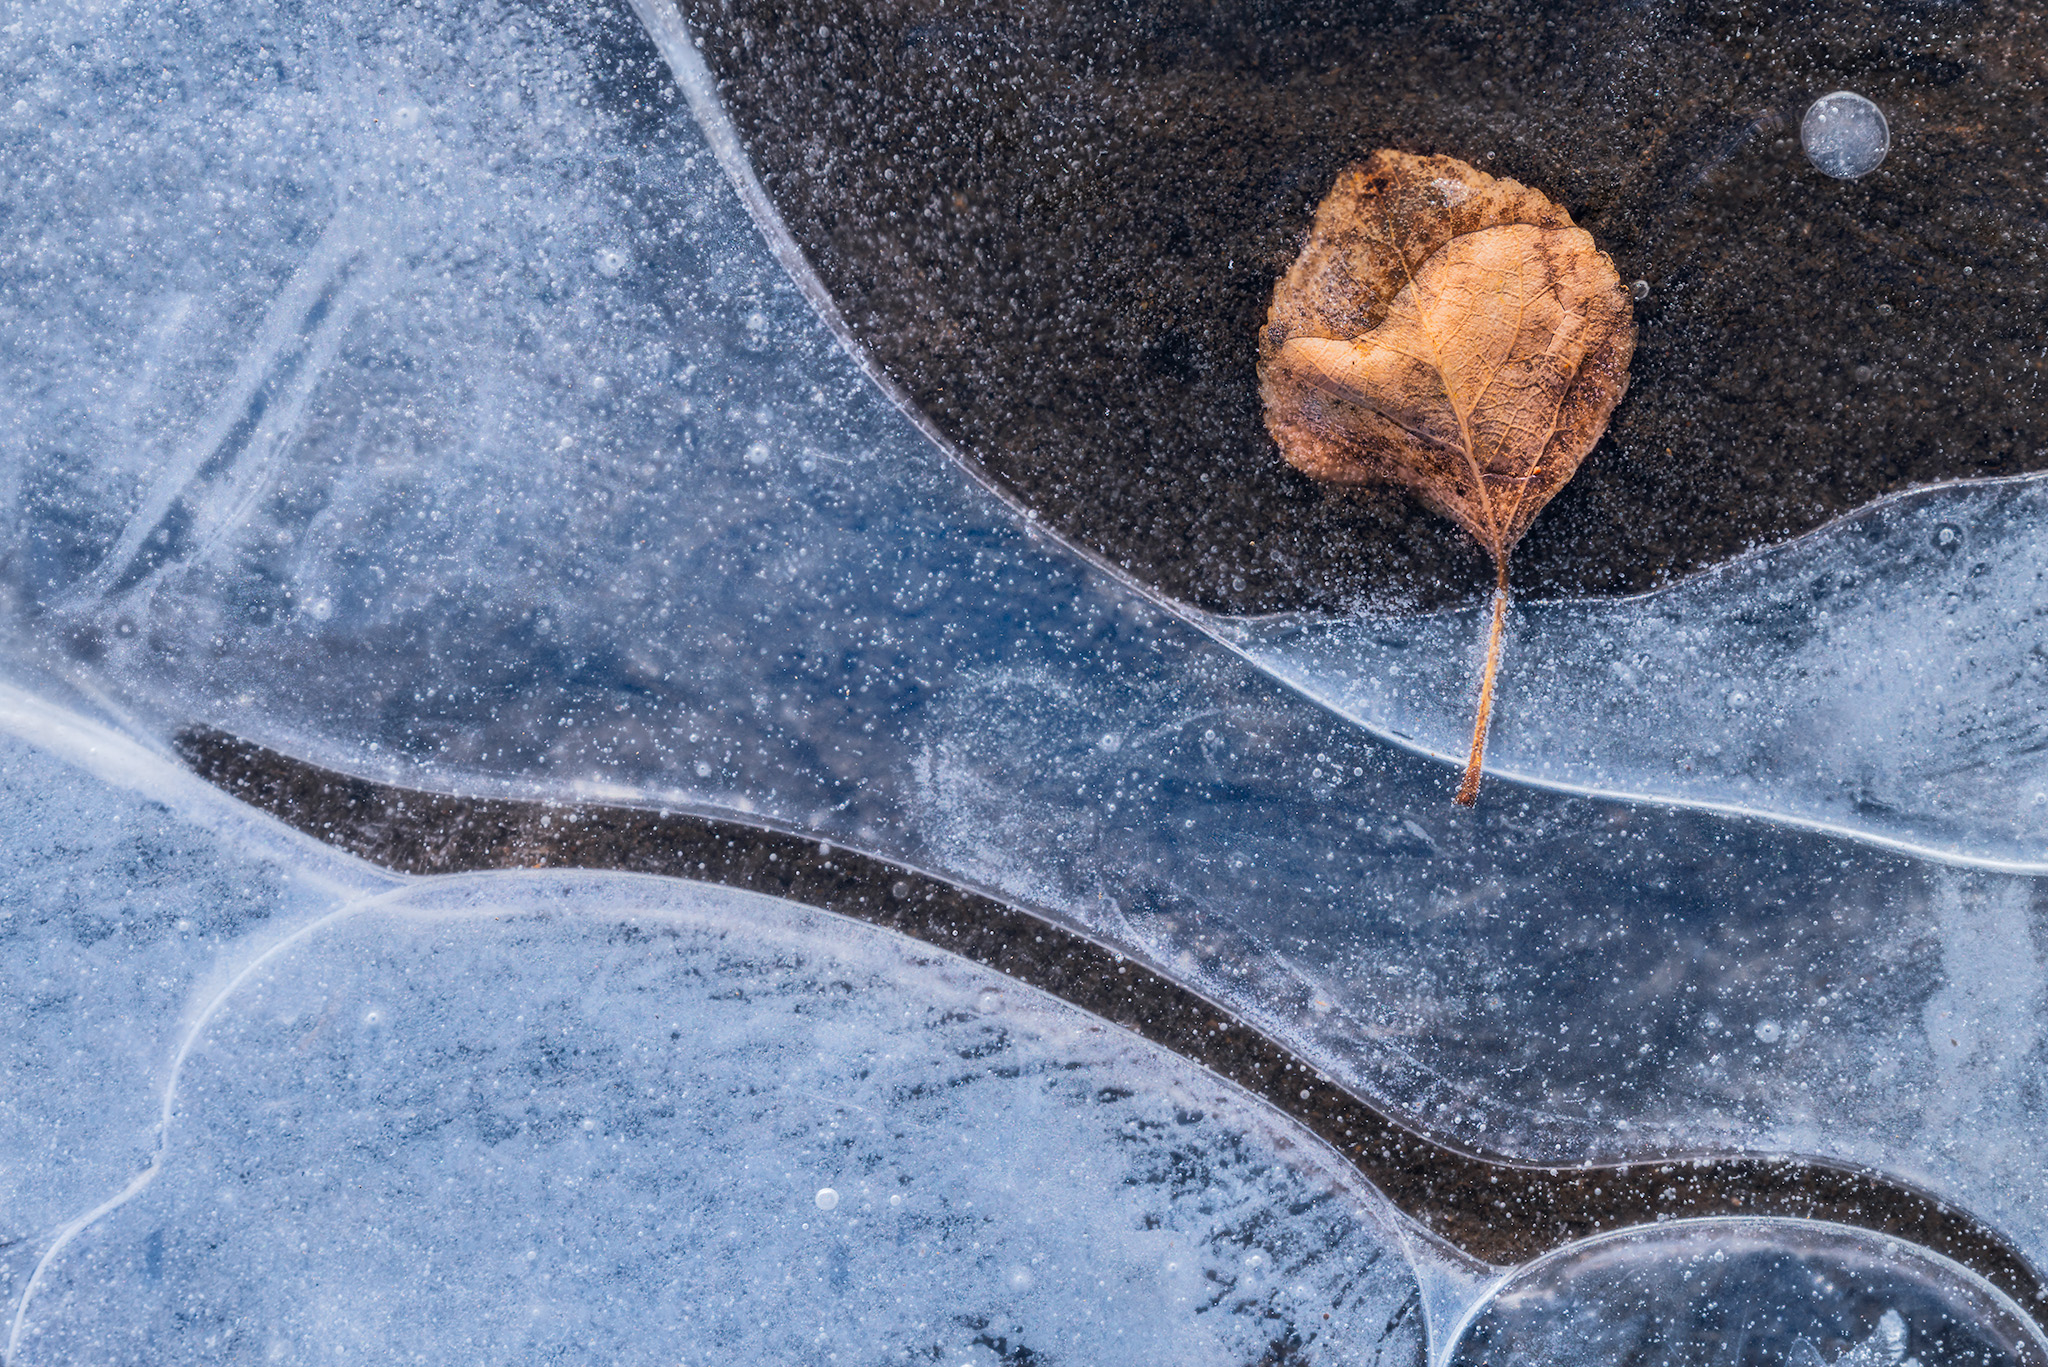 An intimate landscape photograph of a leaf encased in ice